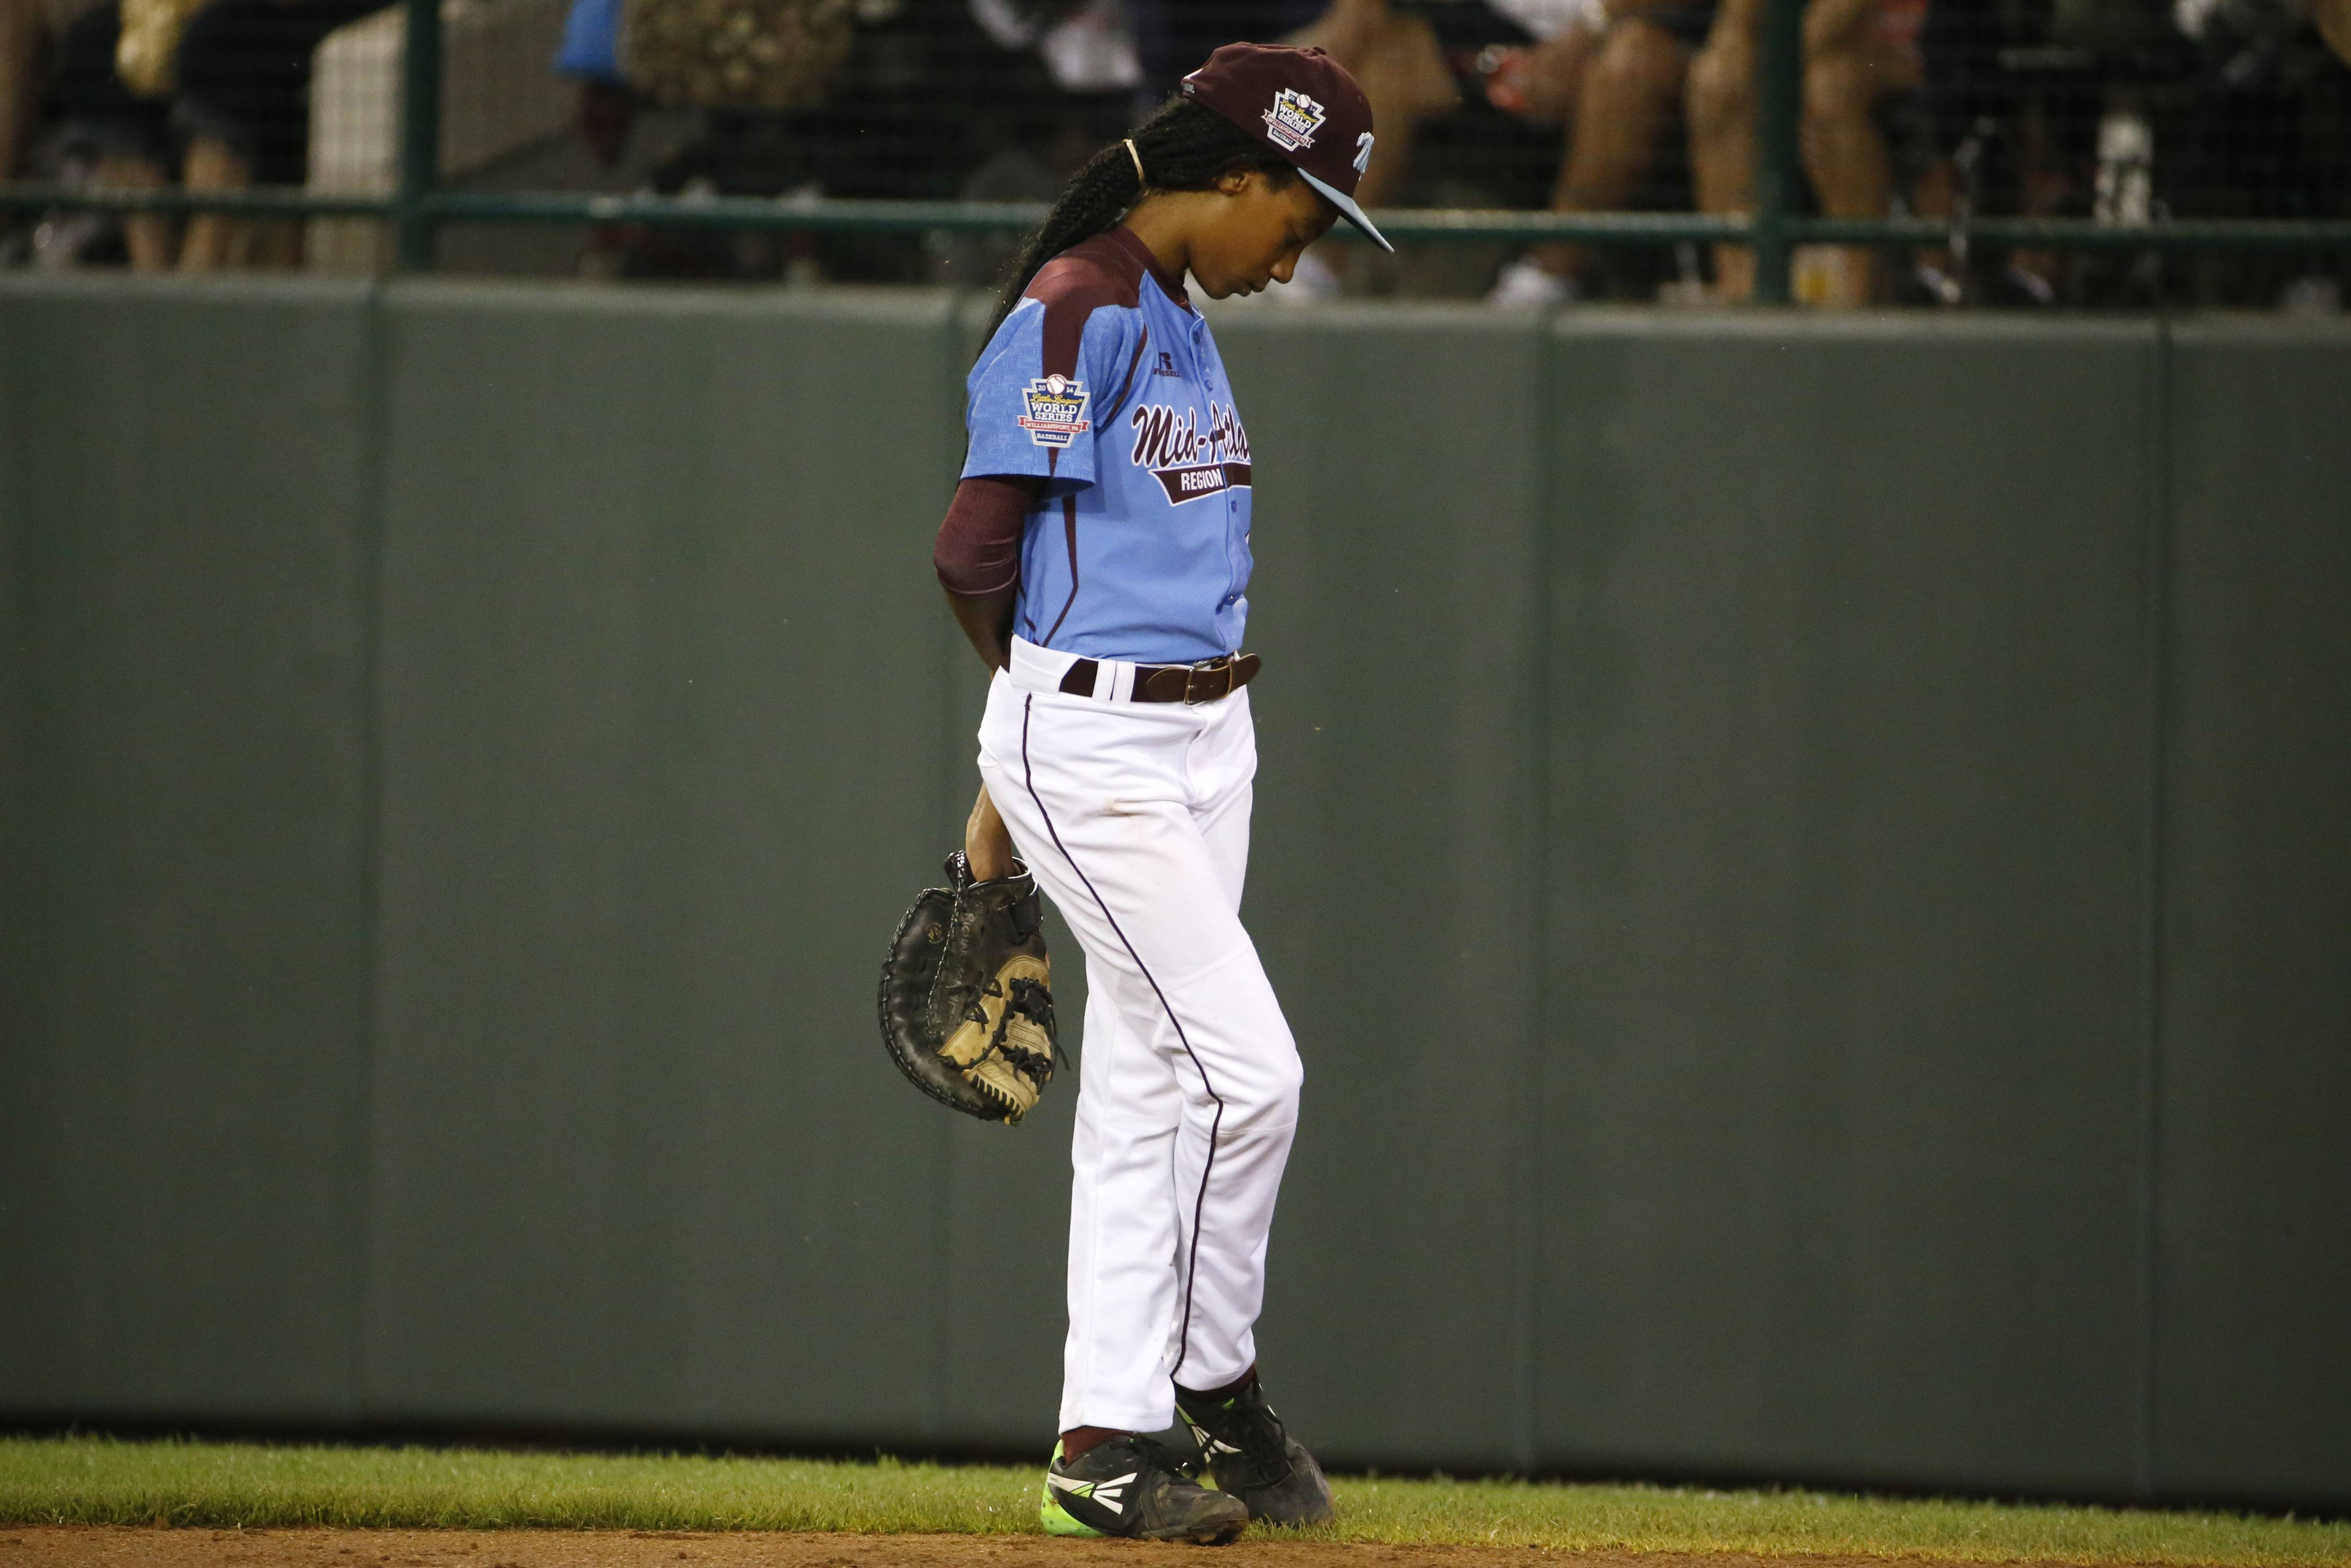 Philadelphia pitcher Mo'ne Davis stands at first base after being removed as pitcher in the third inning of a United States semi-final baseball game Wednesday against Las Vegas at the Little League World Series tournament in South Williamsport, Pa. Philly lost to the Vegas team 8-1.